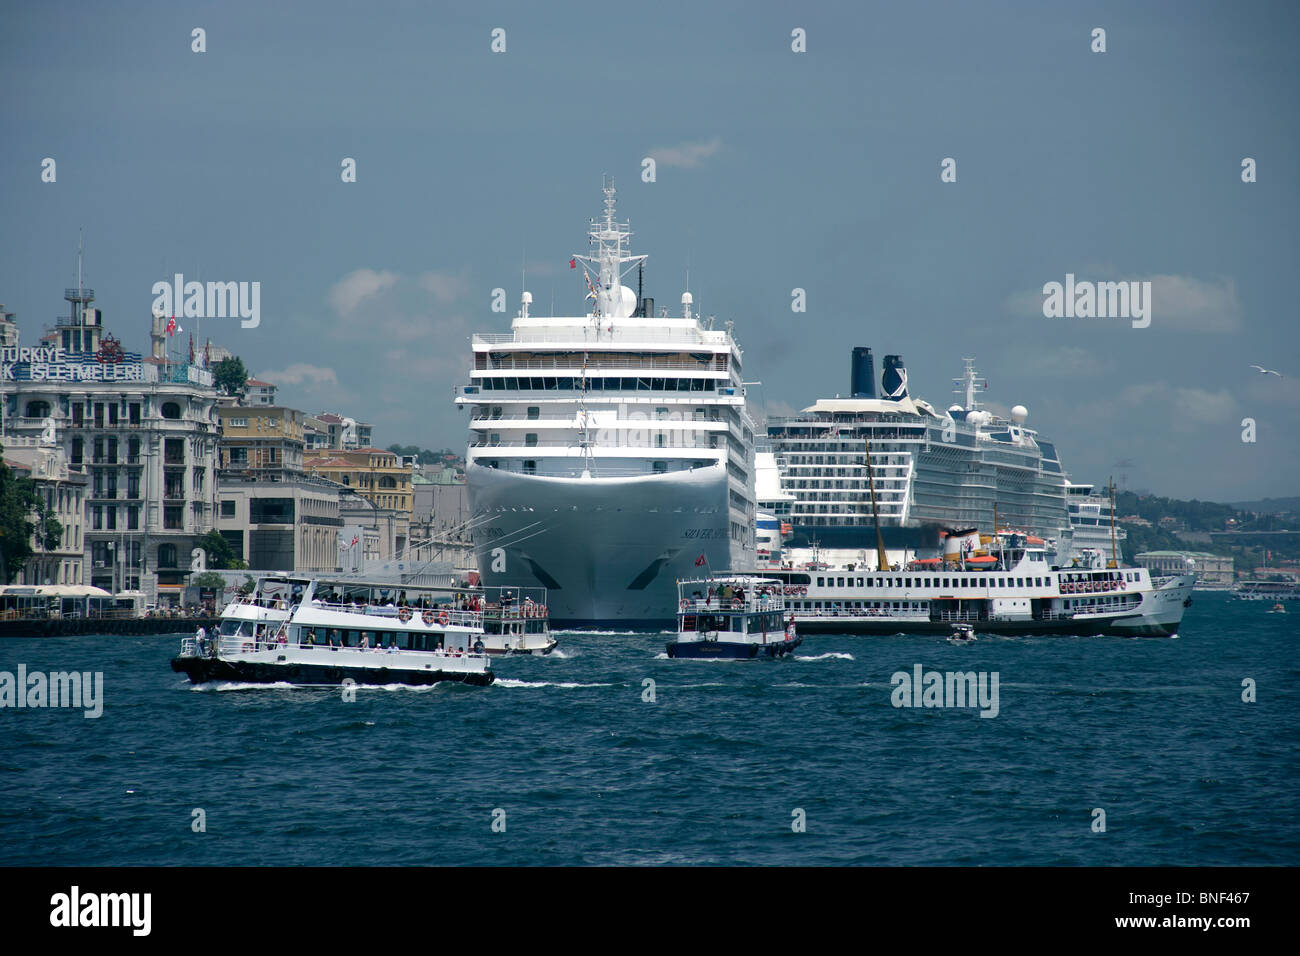 Cruise ships and ferries near Karakoy in Istanbul, Turkey - Stock Image